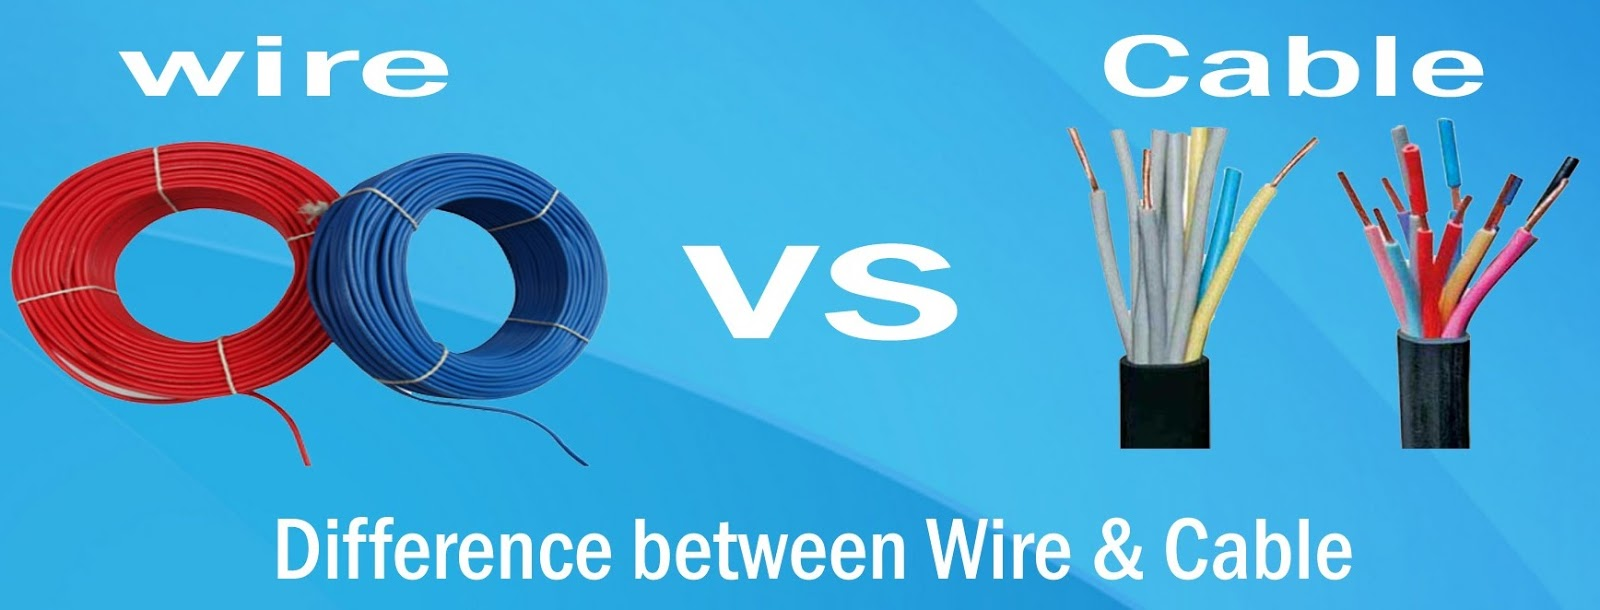 Arindam Bhadra: Difference between Cable and Wire